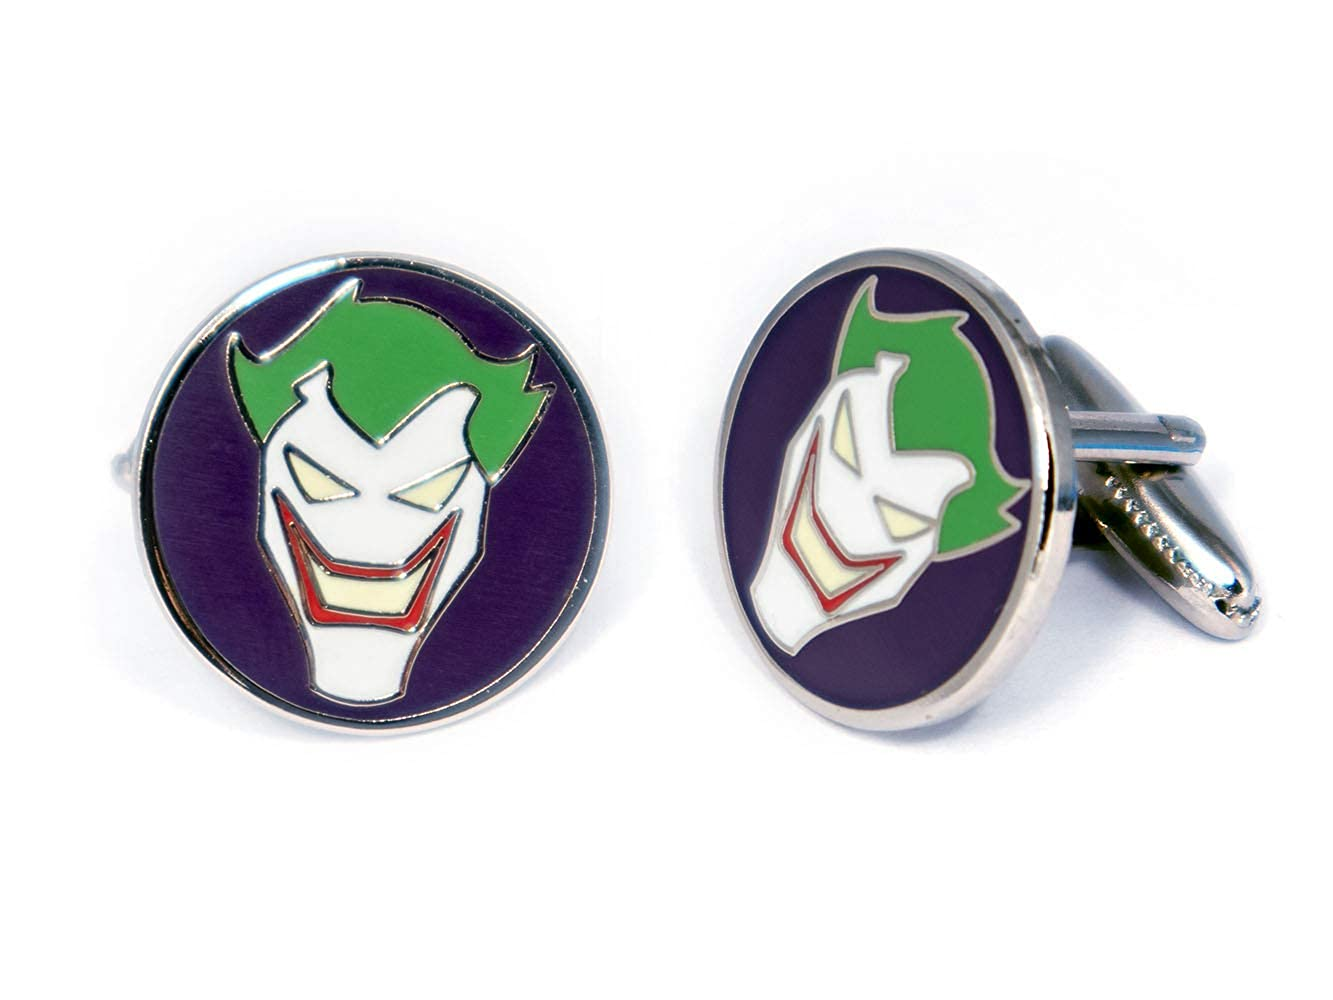 SharedImagination Joker Minimalist Cufflinks Harley Quinn Cuff Links Link Wedding Party Gift DC Comics Batman vs Superman Tie Tack Jewelry Justice League Tie Clip Avengers Groomsmen Gifts Justice League Cufflinks